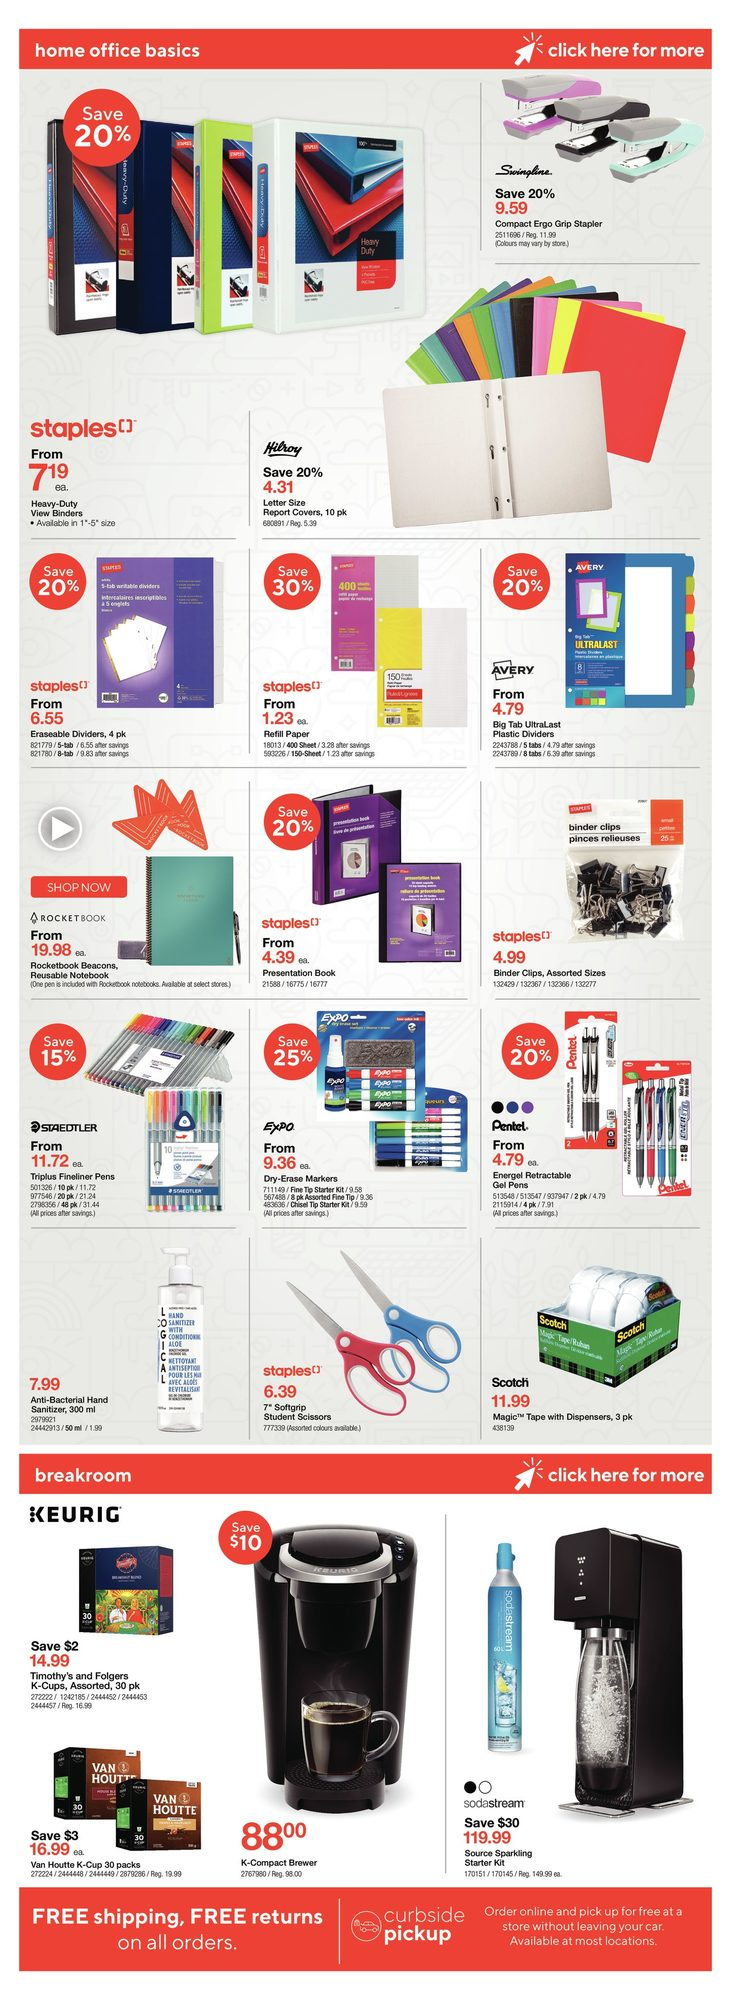 Staples - Weekly Flyer Specials - Page 10